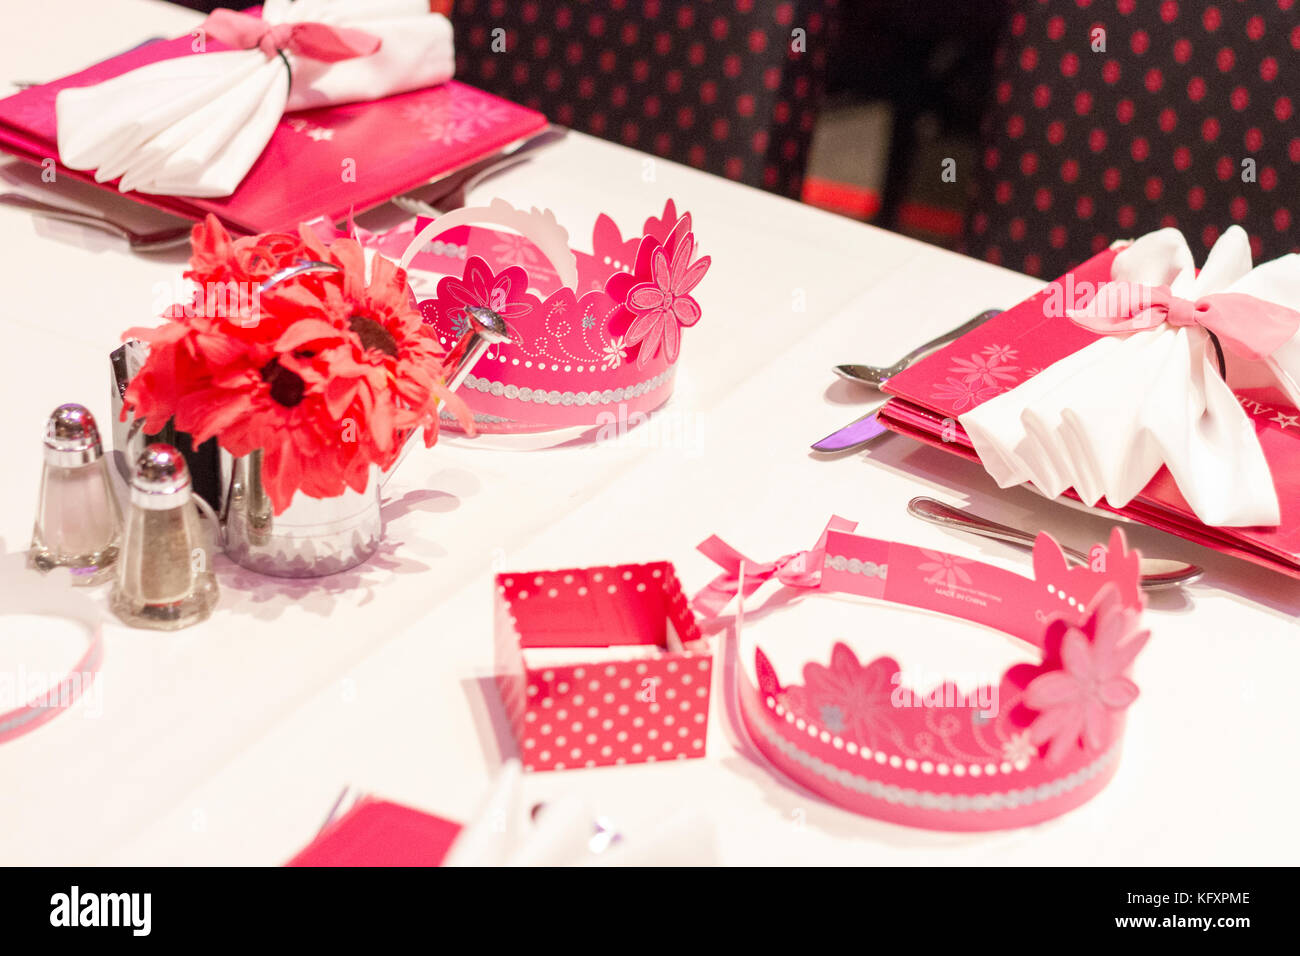 American Girl Place Stock Photos & American Girl Place Stock Images ...